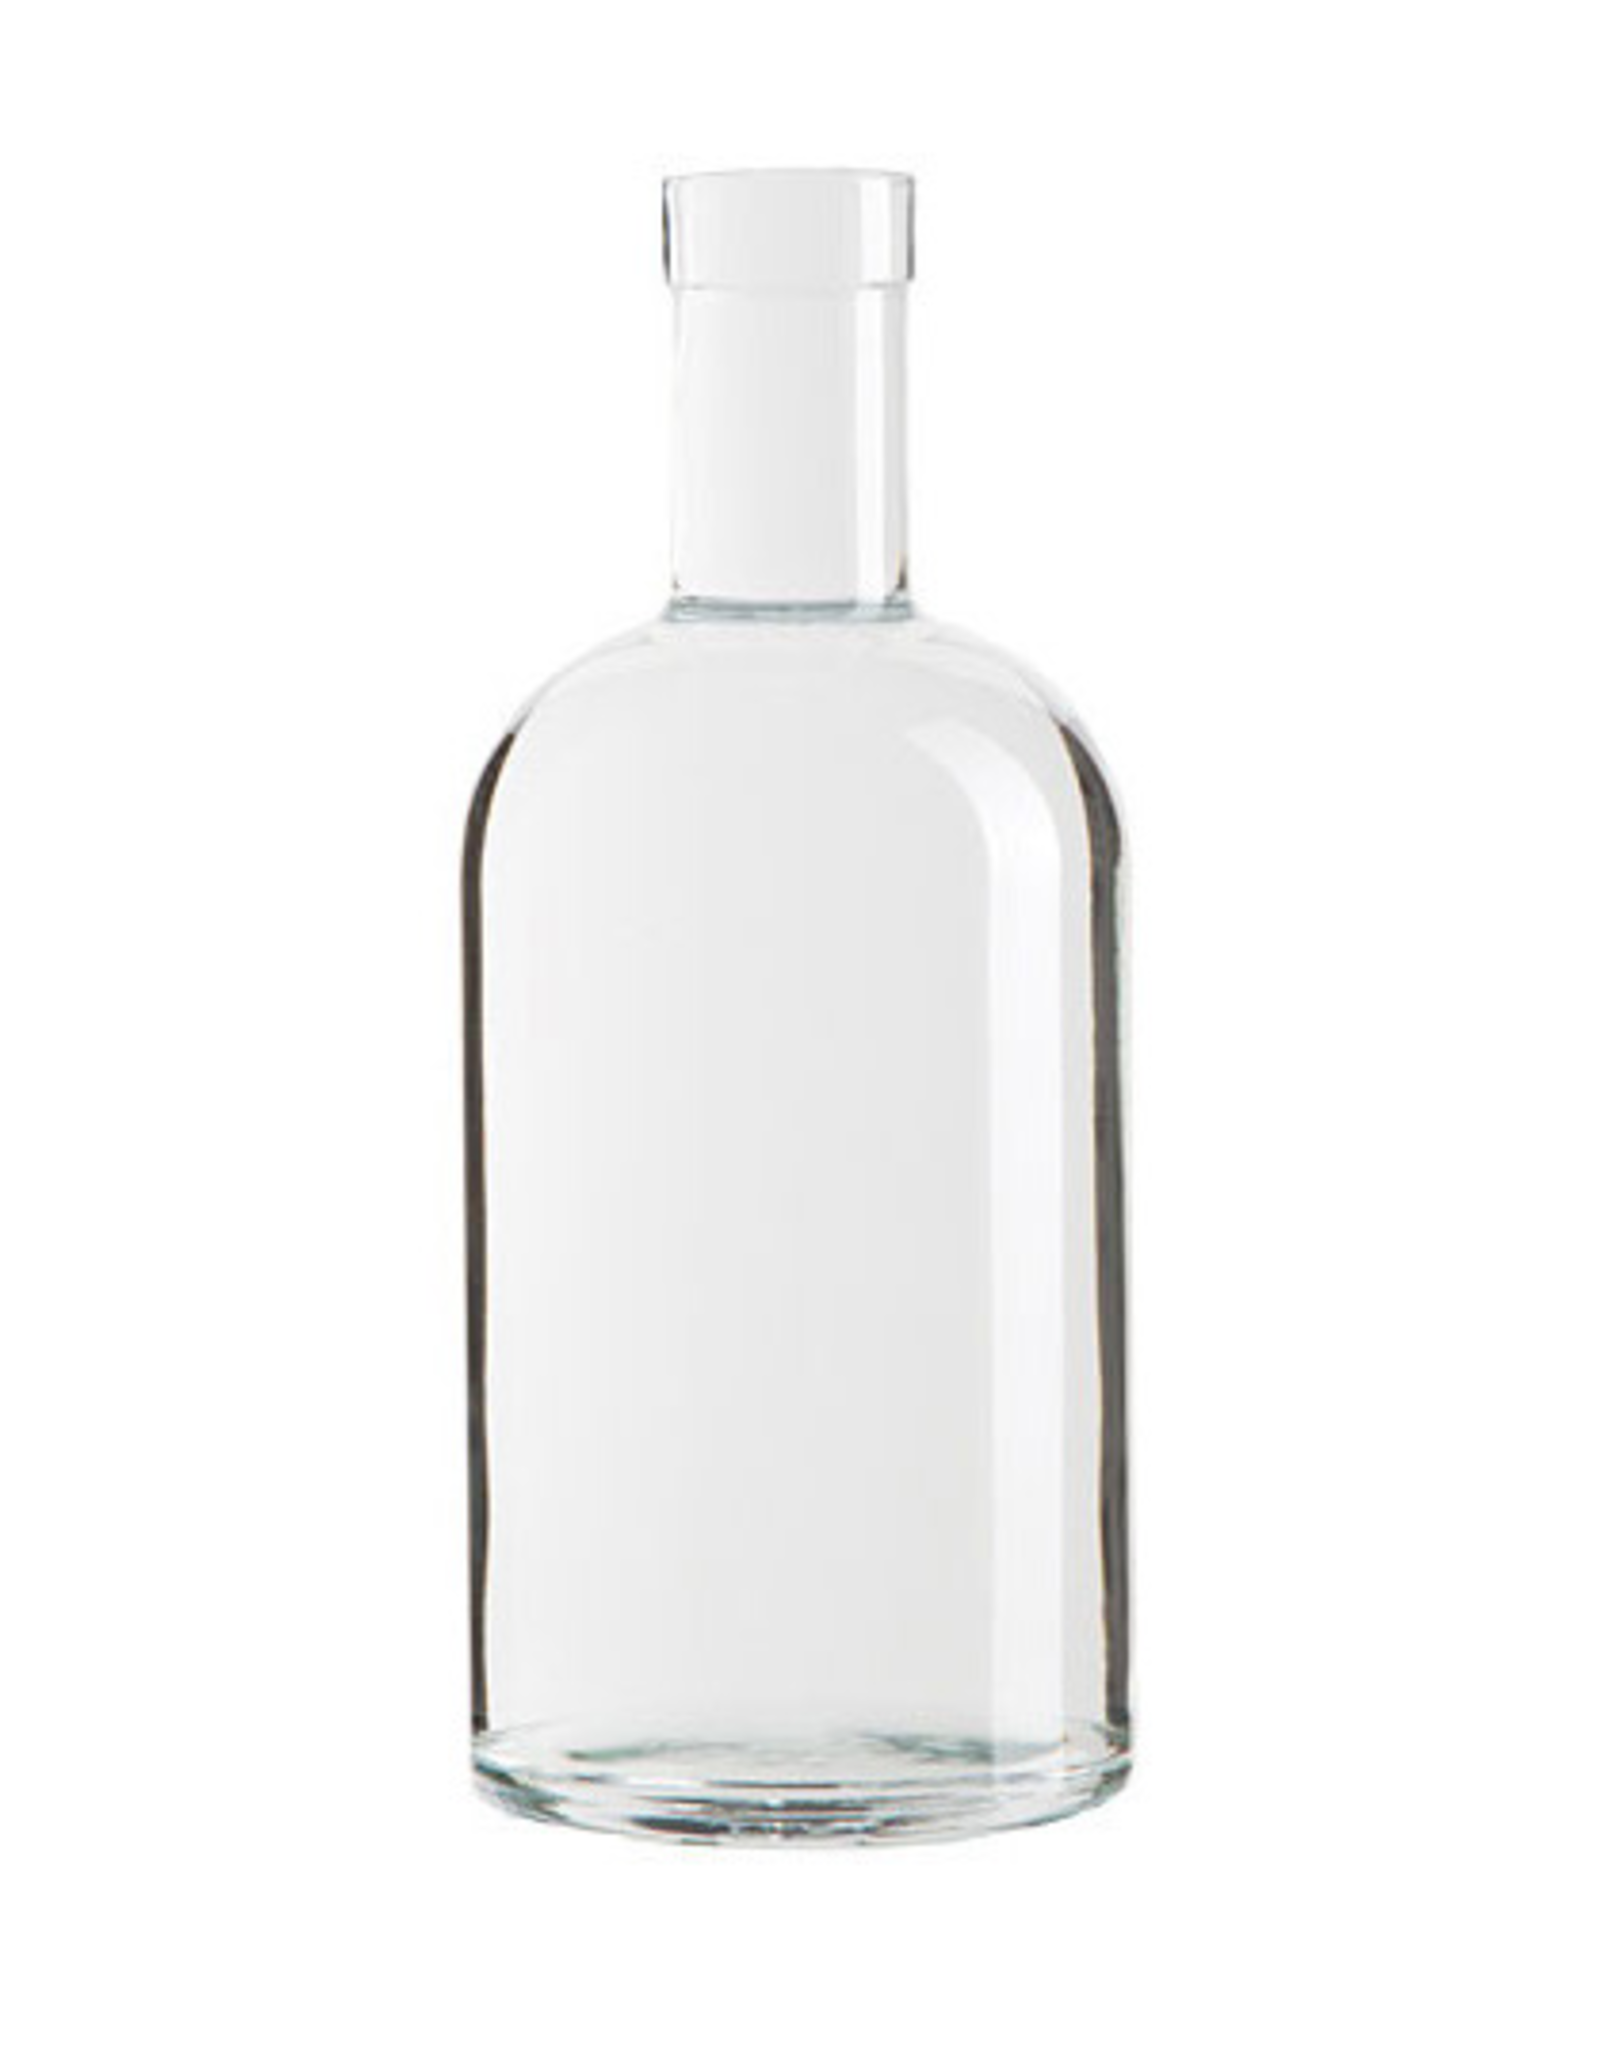 LD CARLSON Accepts 21.5mm diameter cork.<br /> Bottle Specs:<br /> Color: Flint<br /> Style: Round<br /> Finish: Bartop<br /> Bottom: Flat Bottom<br /> Height: 8.65 in<br /> Label Panel: 4.236 in<br /> Unit Pack Size : 12 Bottles Per Case